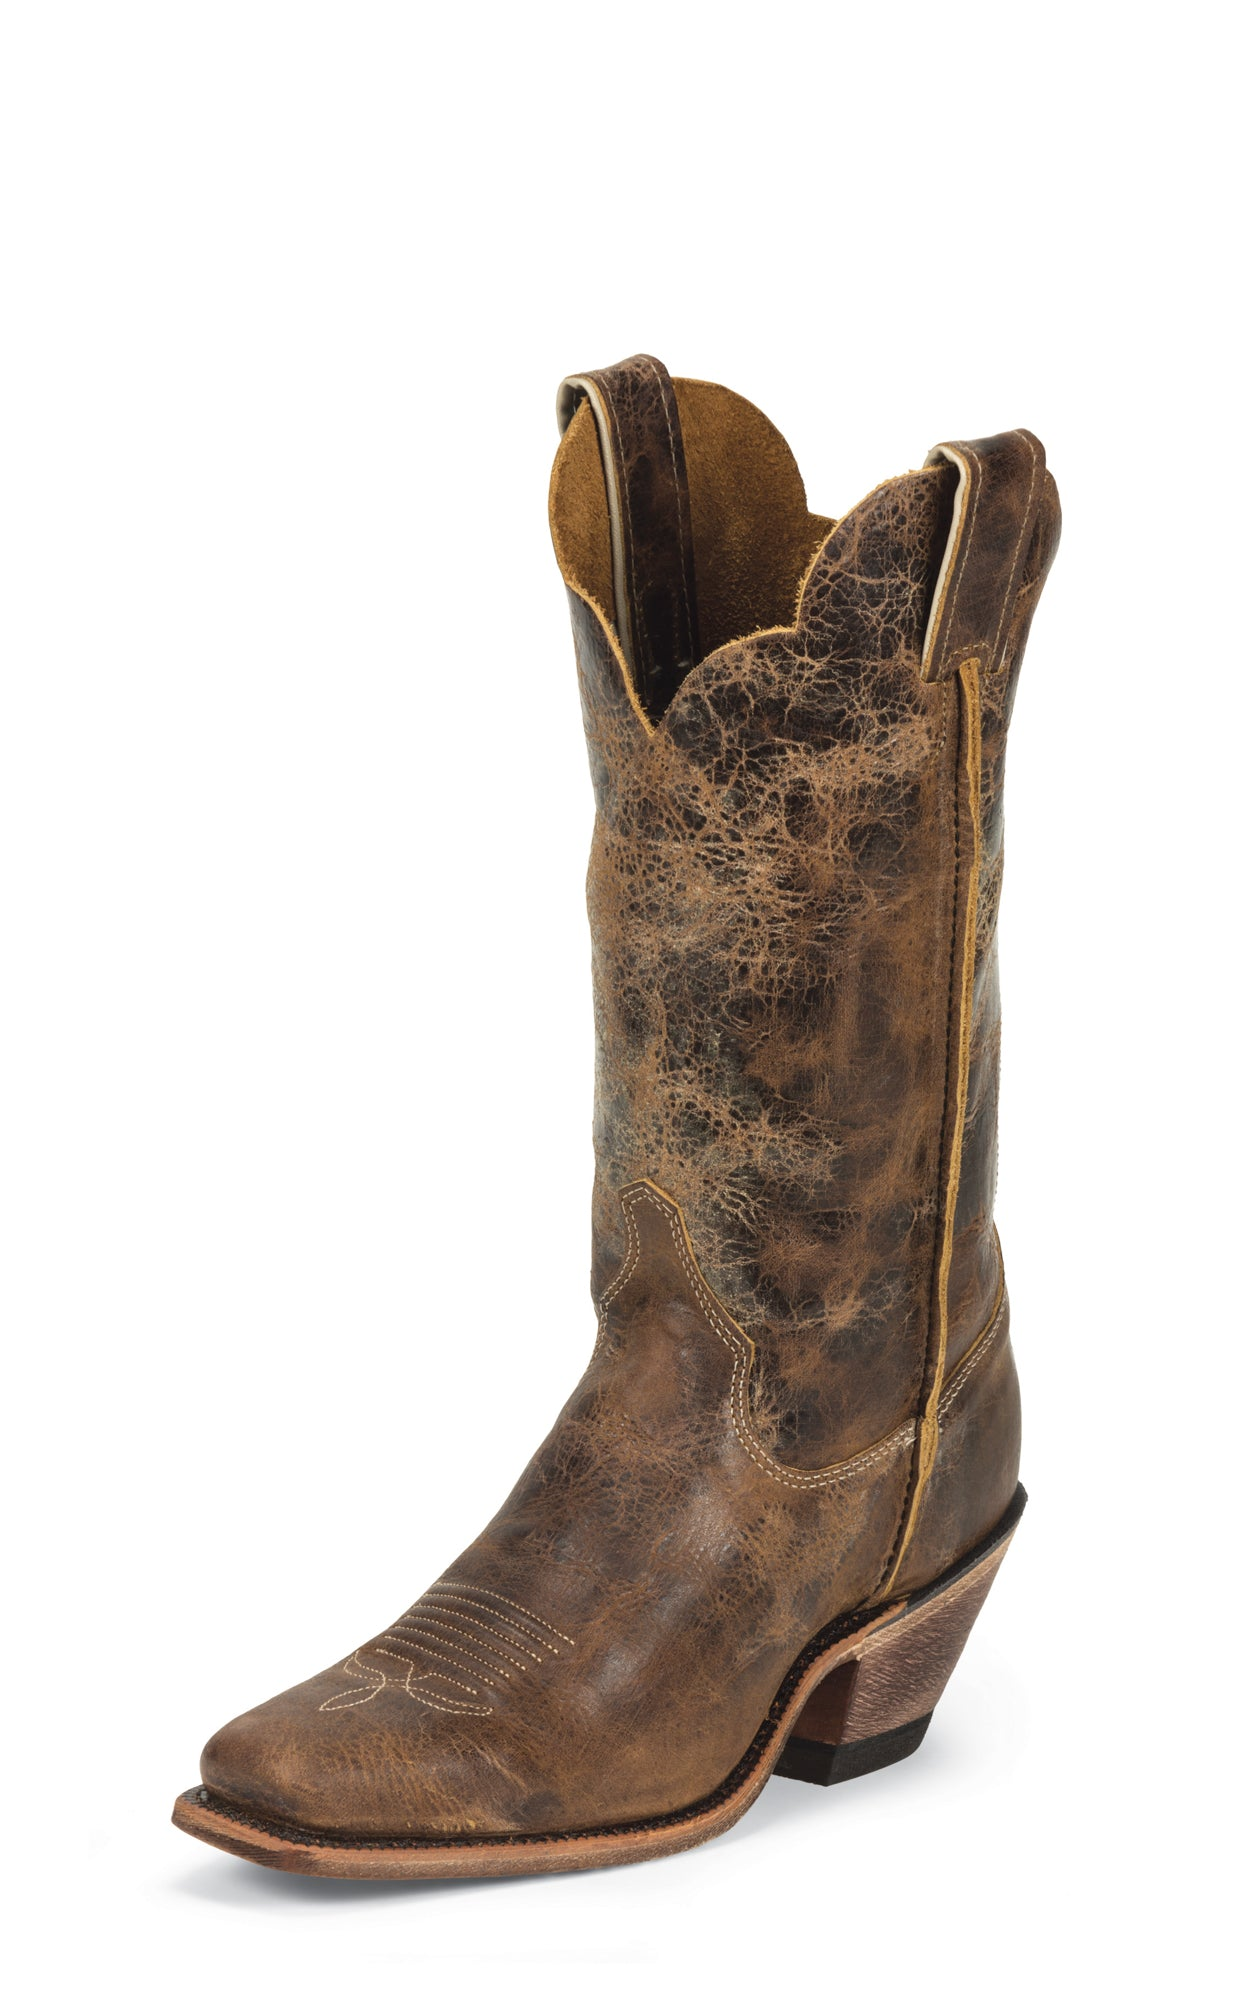 7f0dff939ec Justin Womens Dark Brown Cracked Leather Western Boots 12in Bent Rail